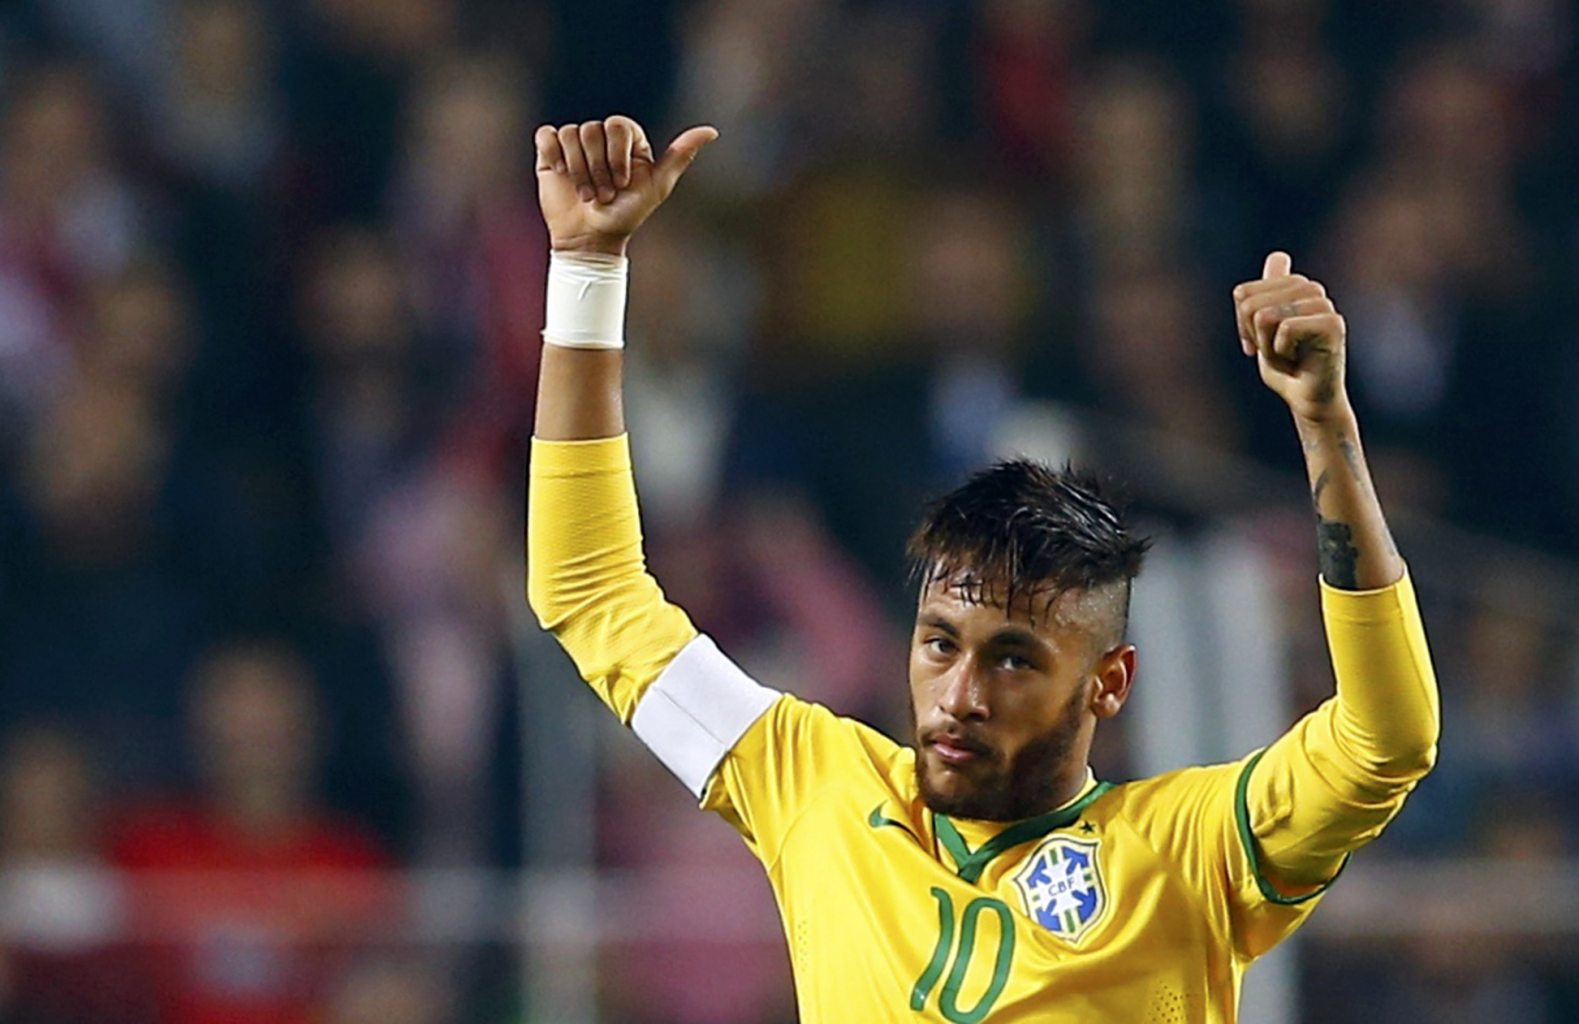 Neymar putting his two thumbs up in a Brazil game